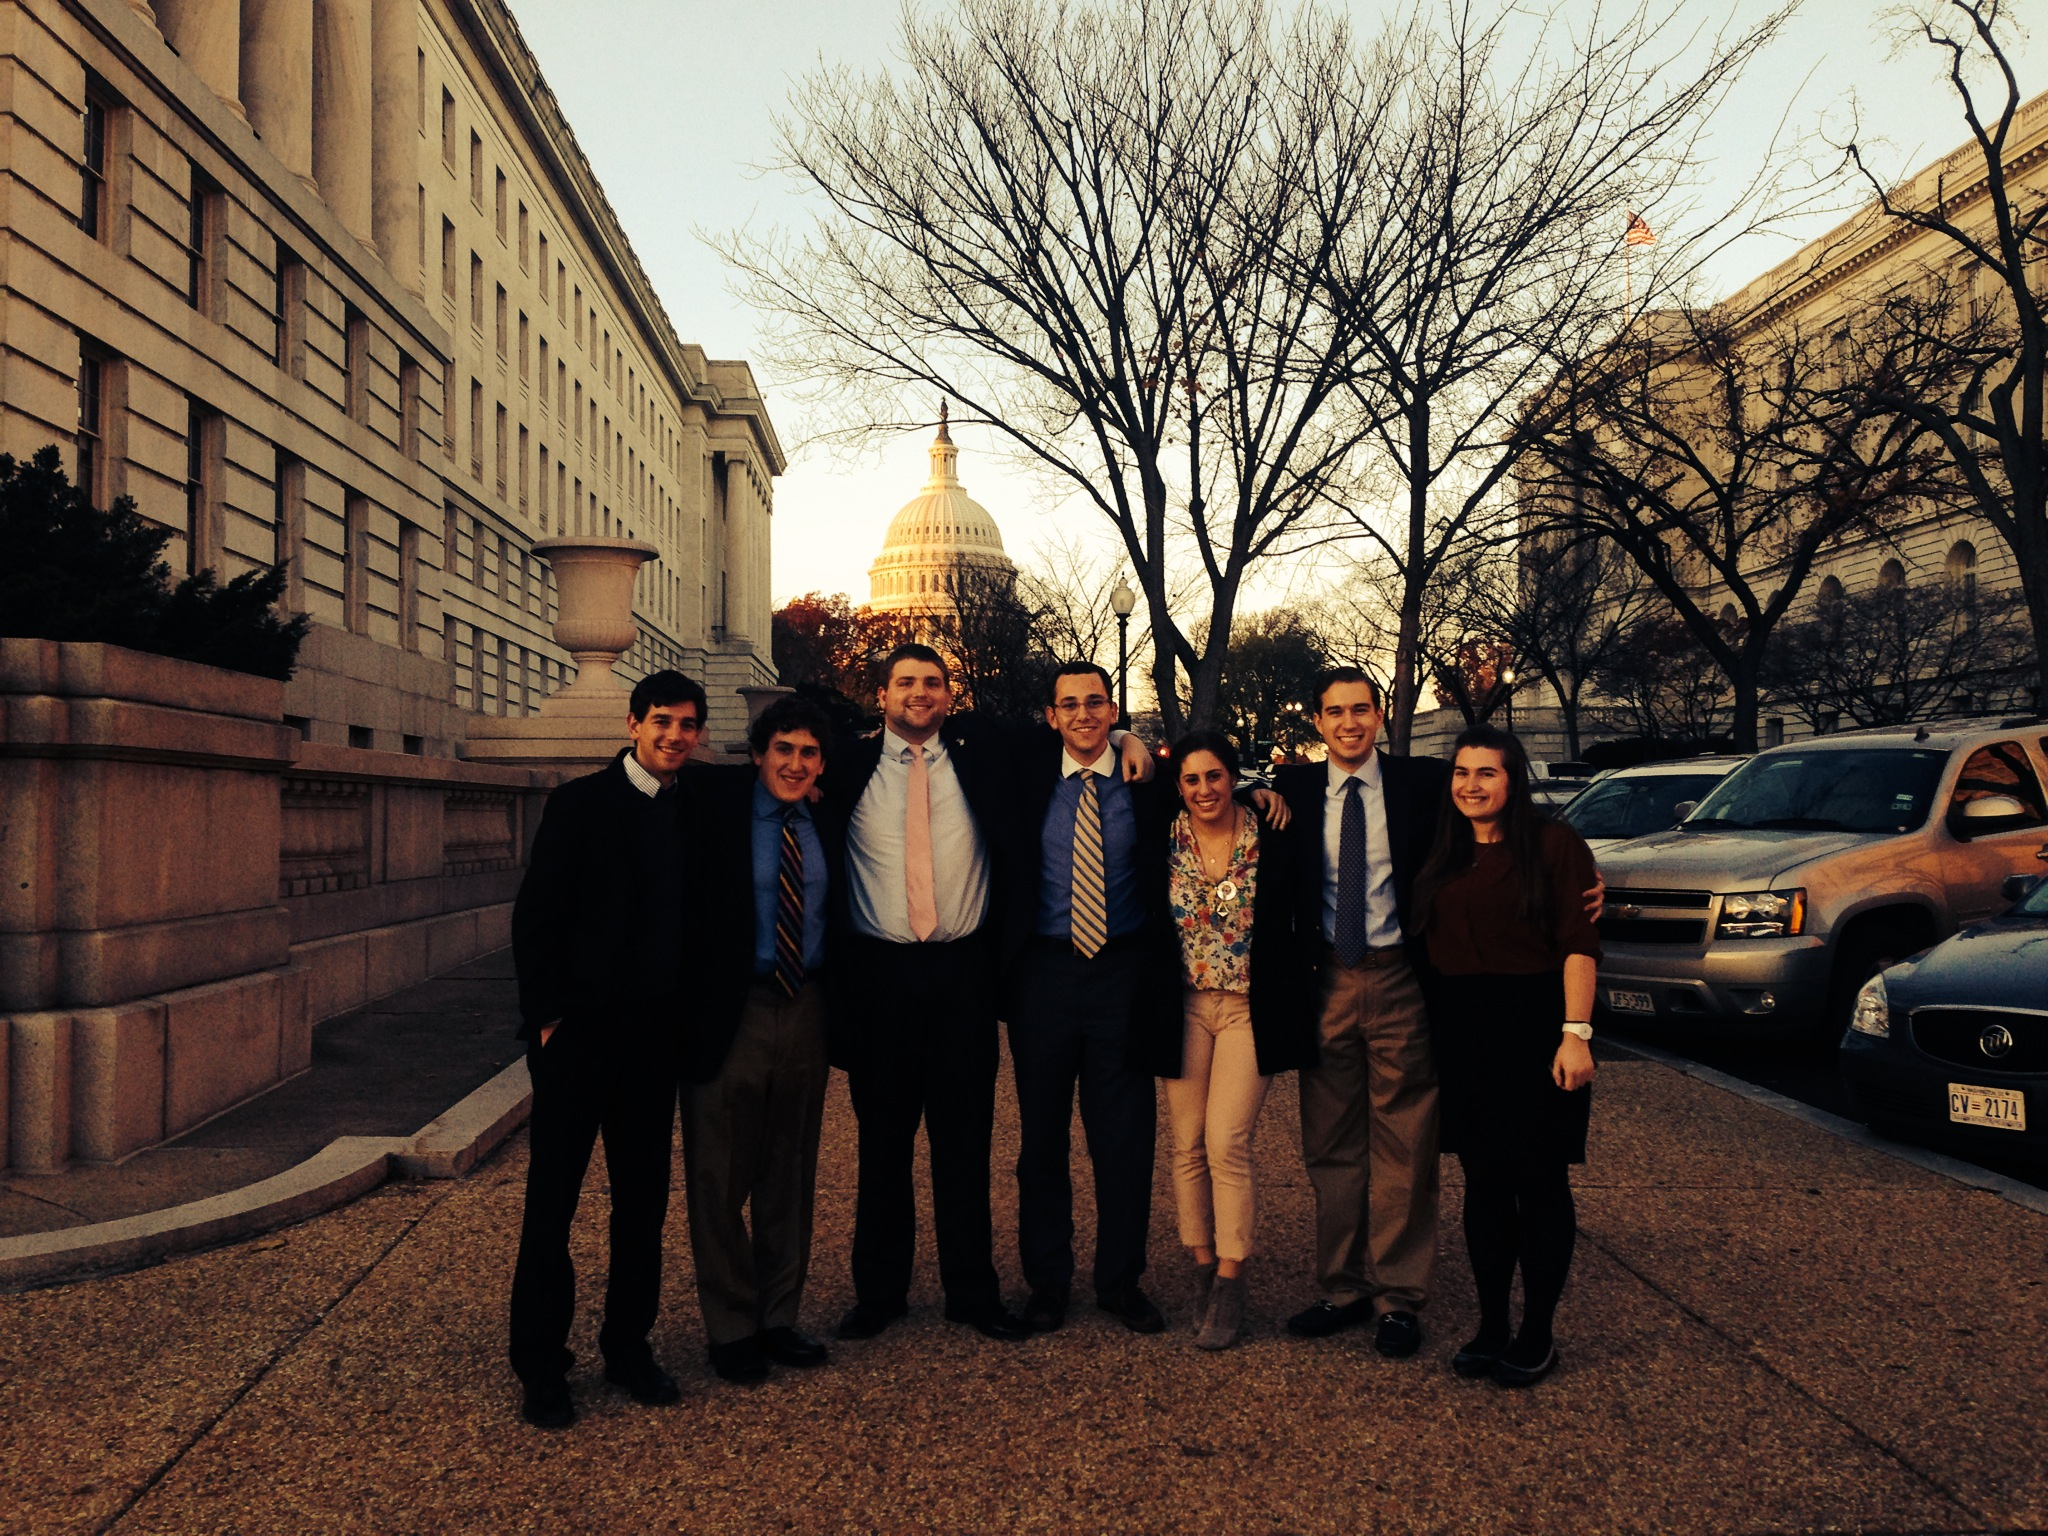 On Capitol Hills with Terps for Israel, November 2013